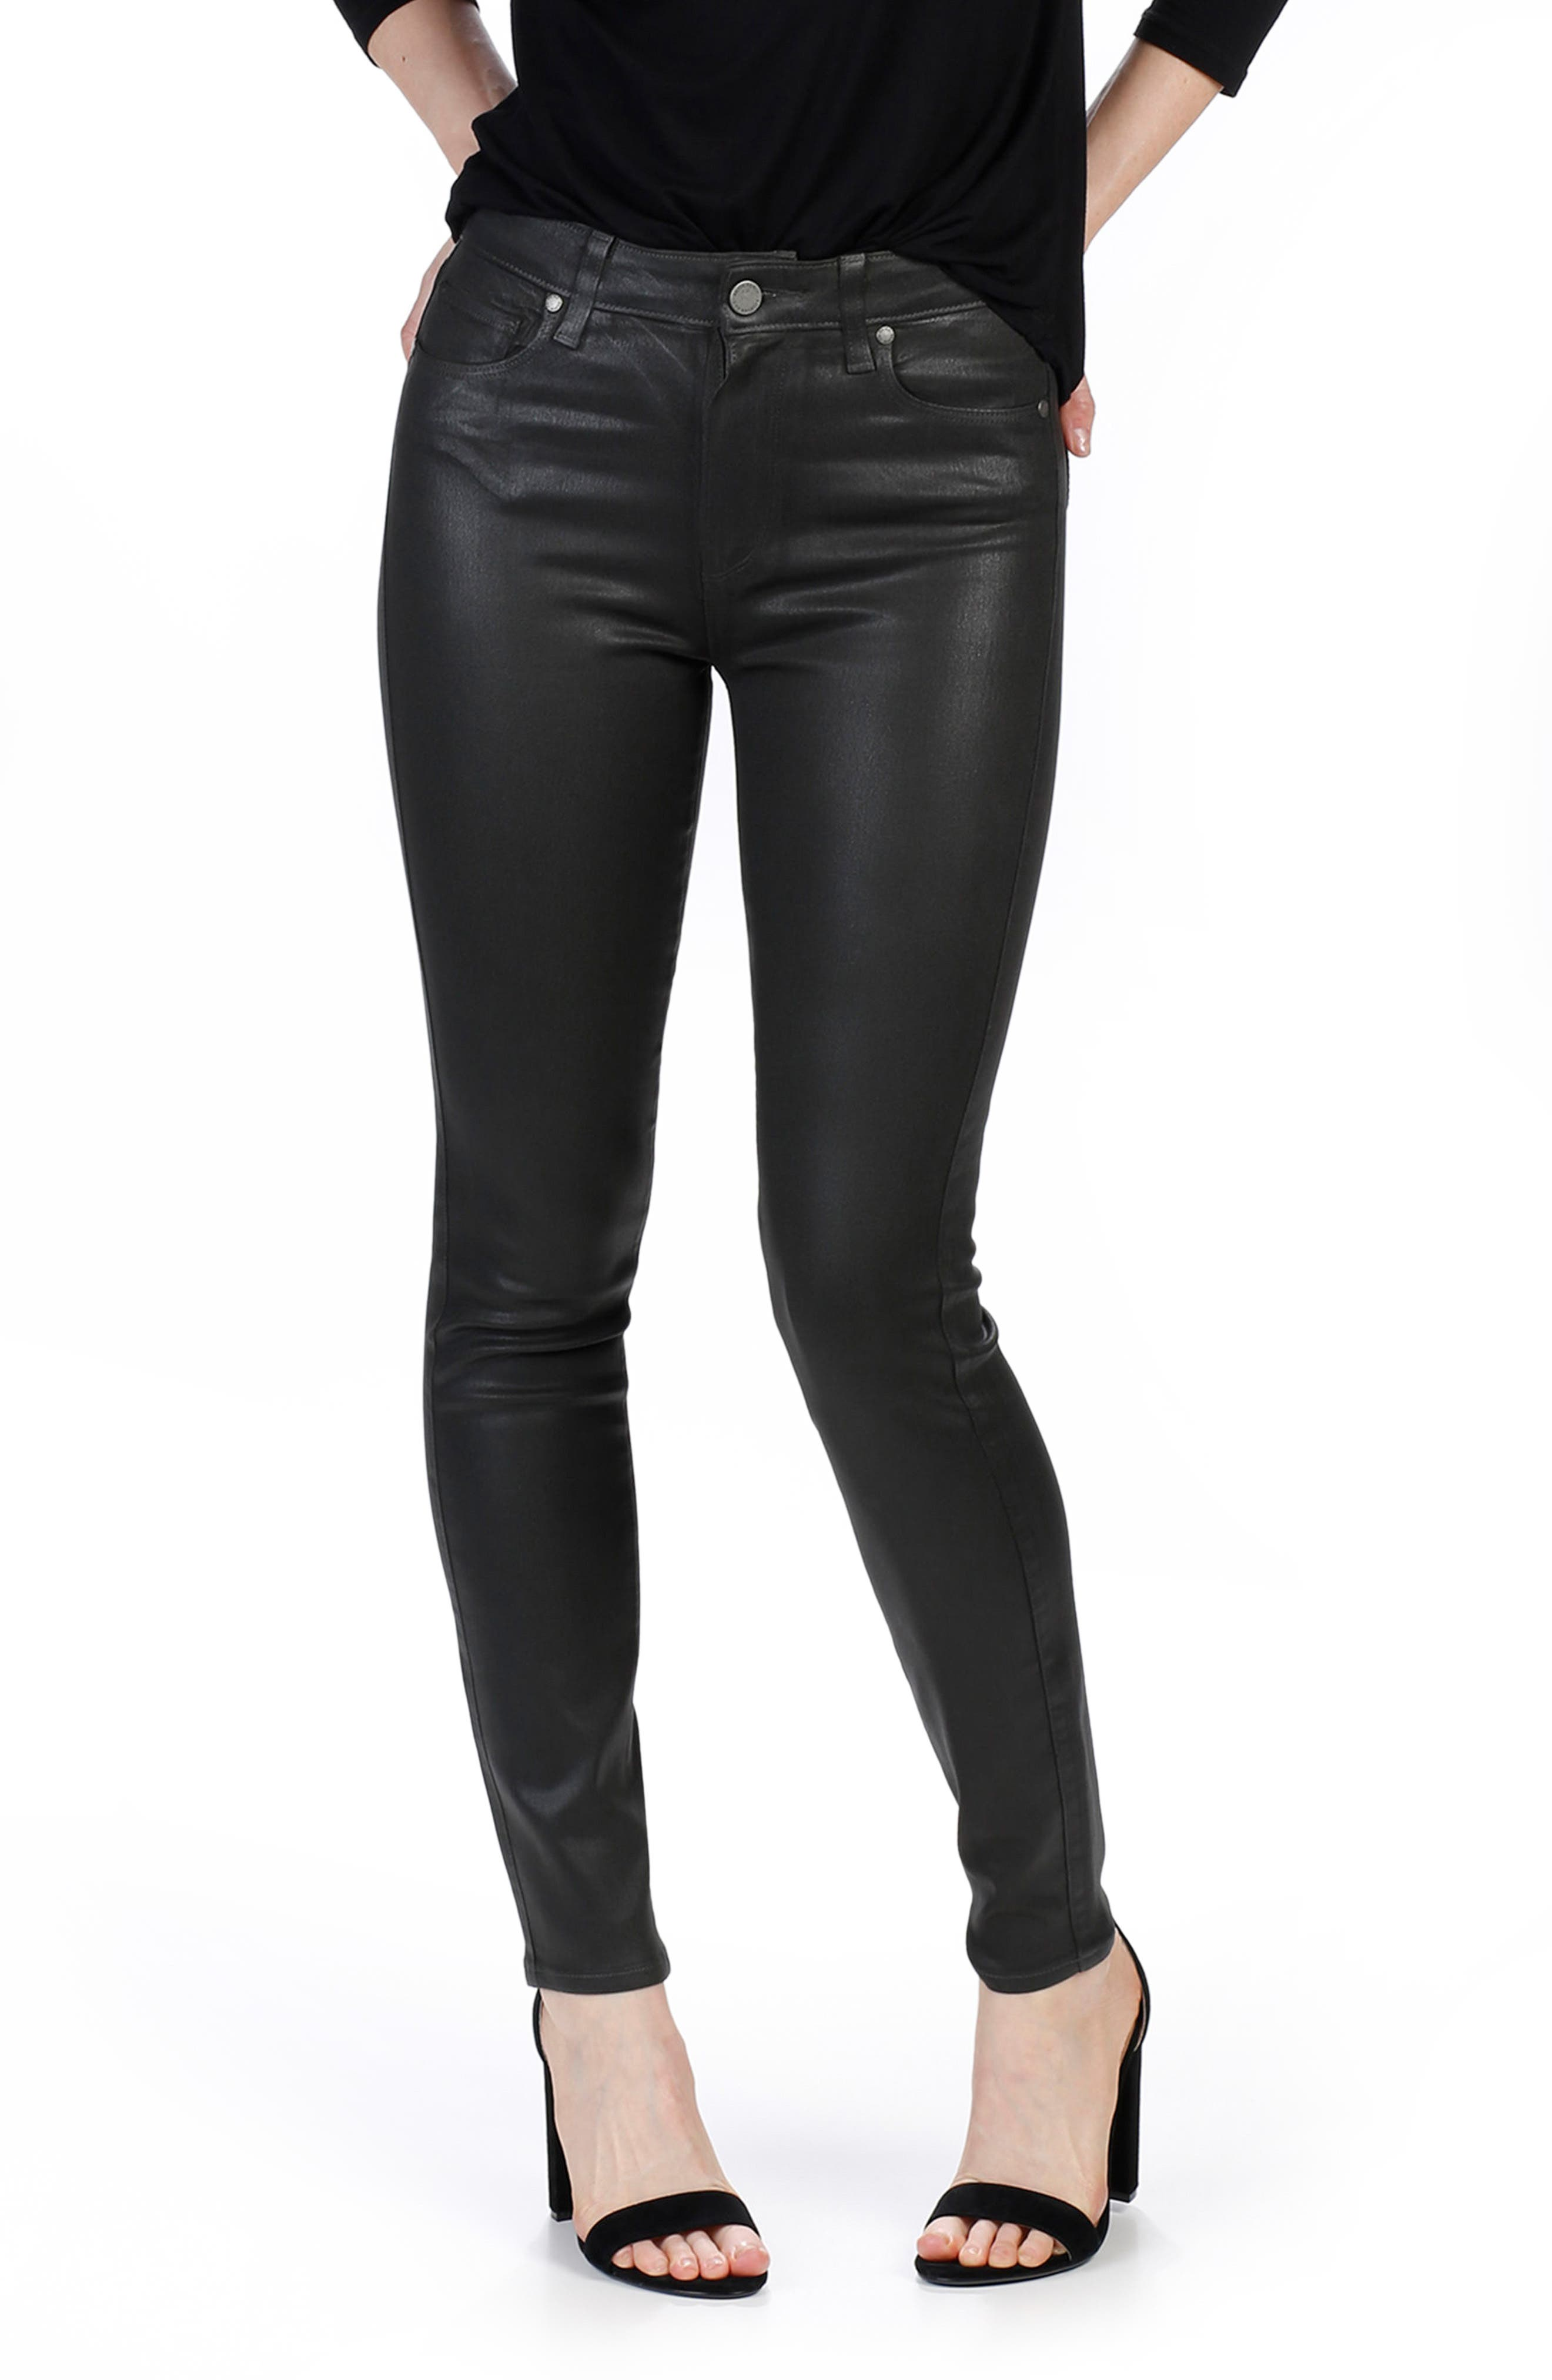 PAIGE Transcend - Hoxton Coated High Waist Ankle Skinny Jeans (Deep Juniper Luxe)